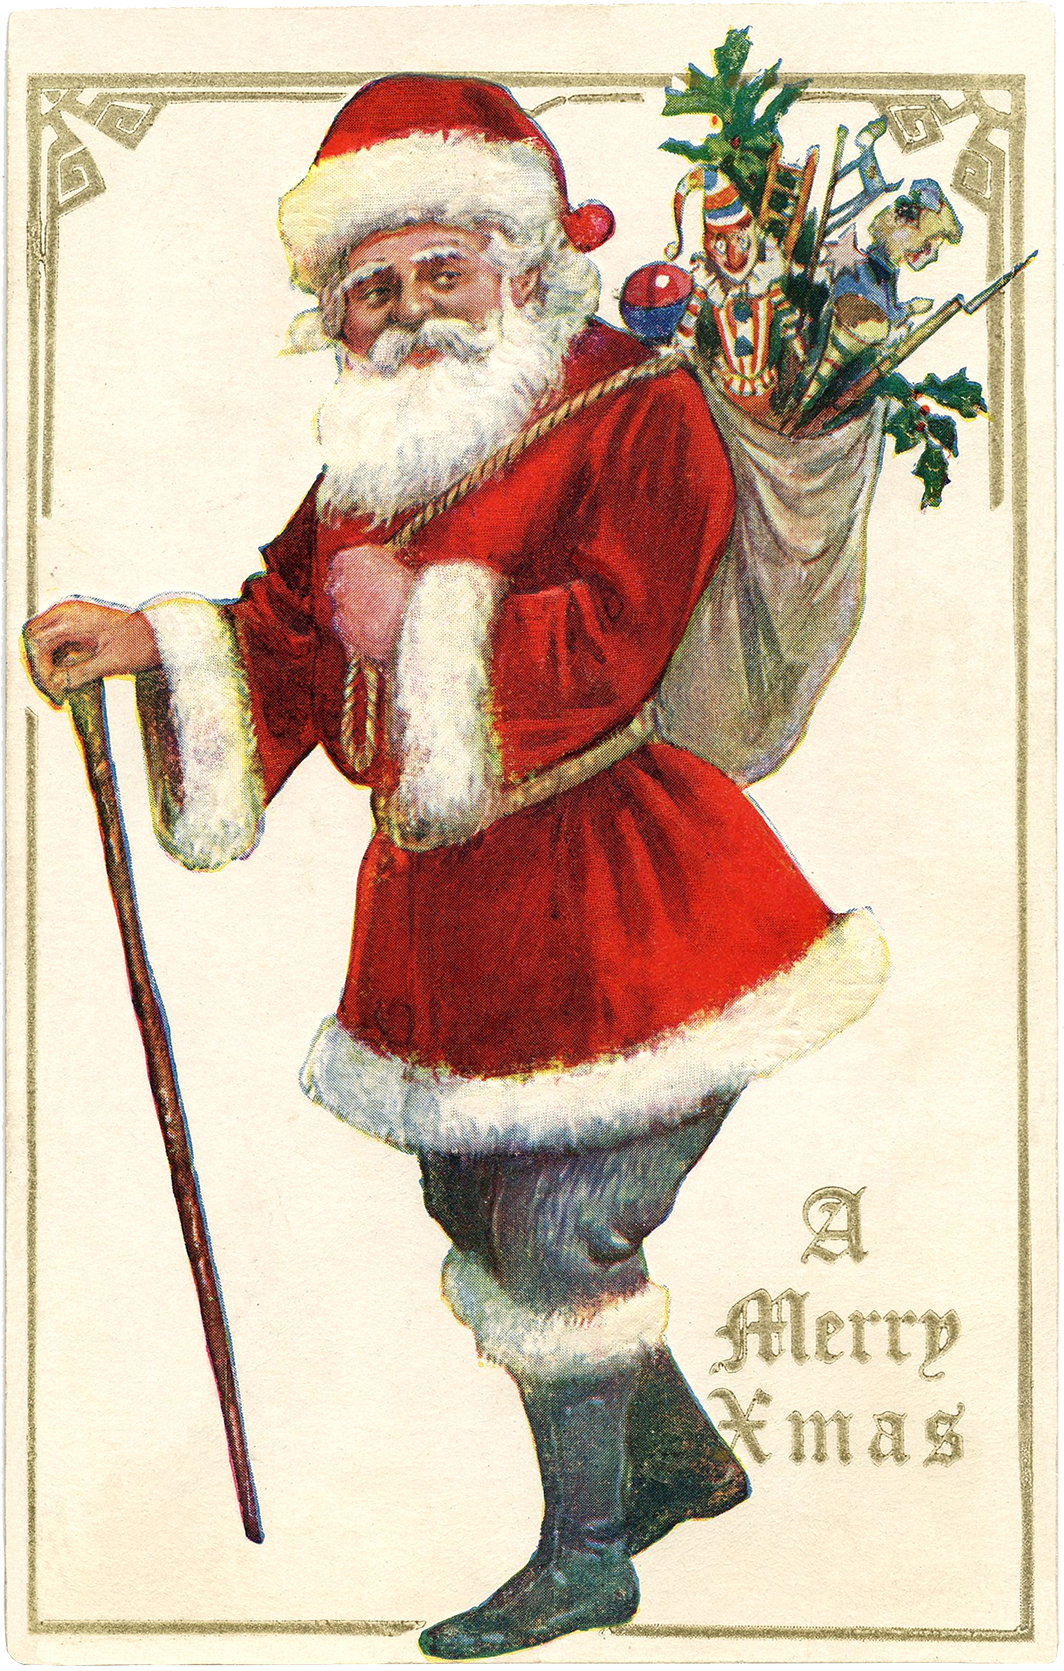 Antique Santa with Cane Image - The Graphics Fairy